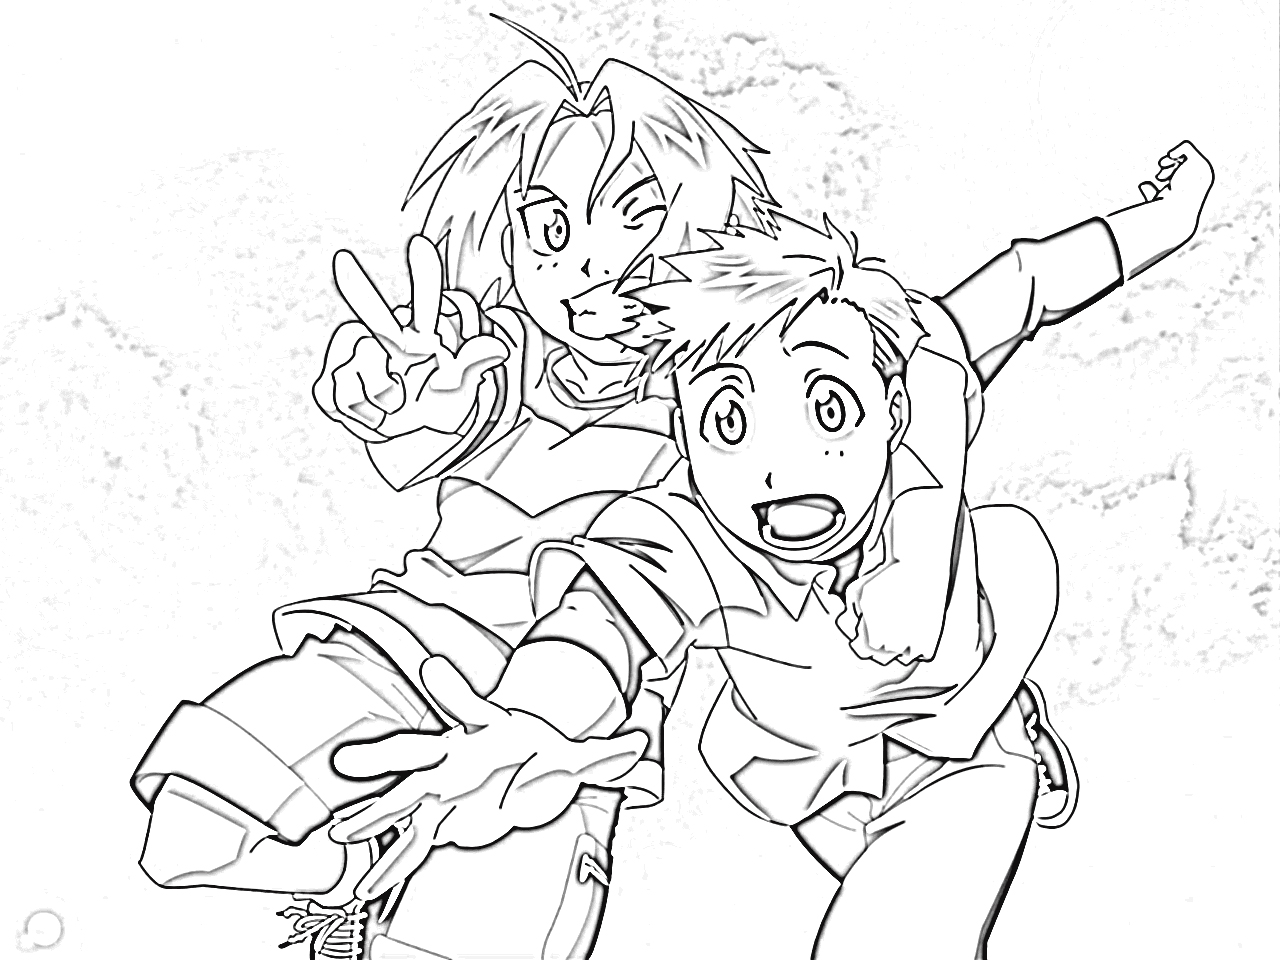 Fullmetal Alchemist Brotherhood Coloring Pages 9